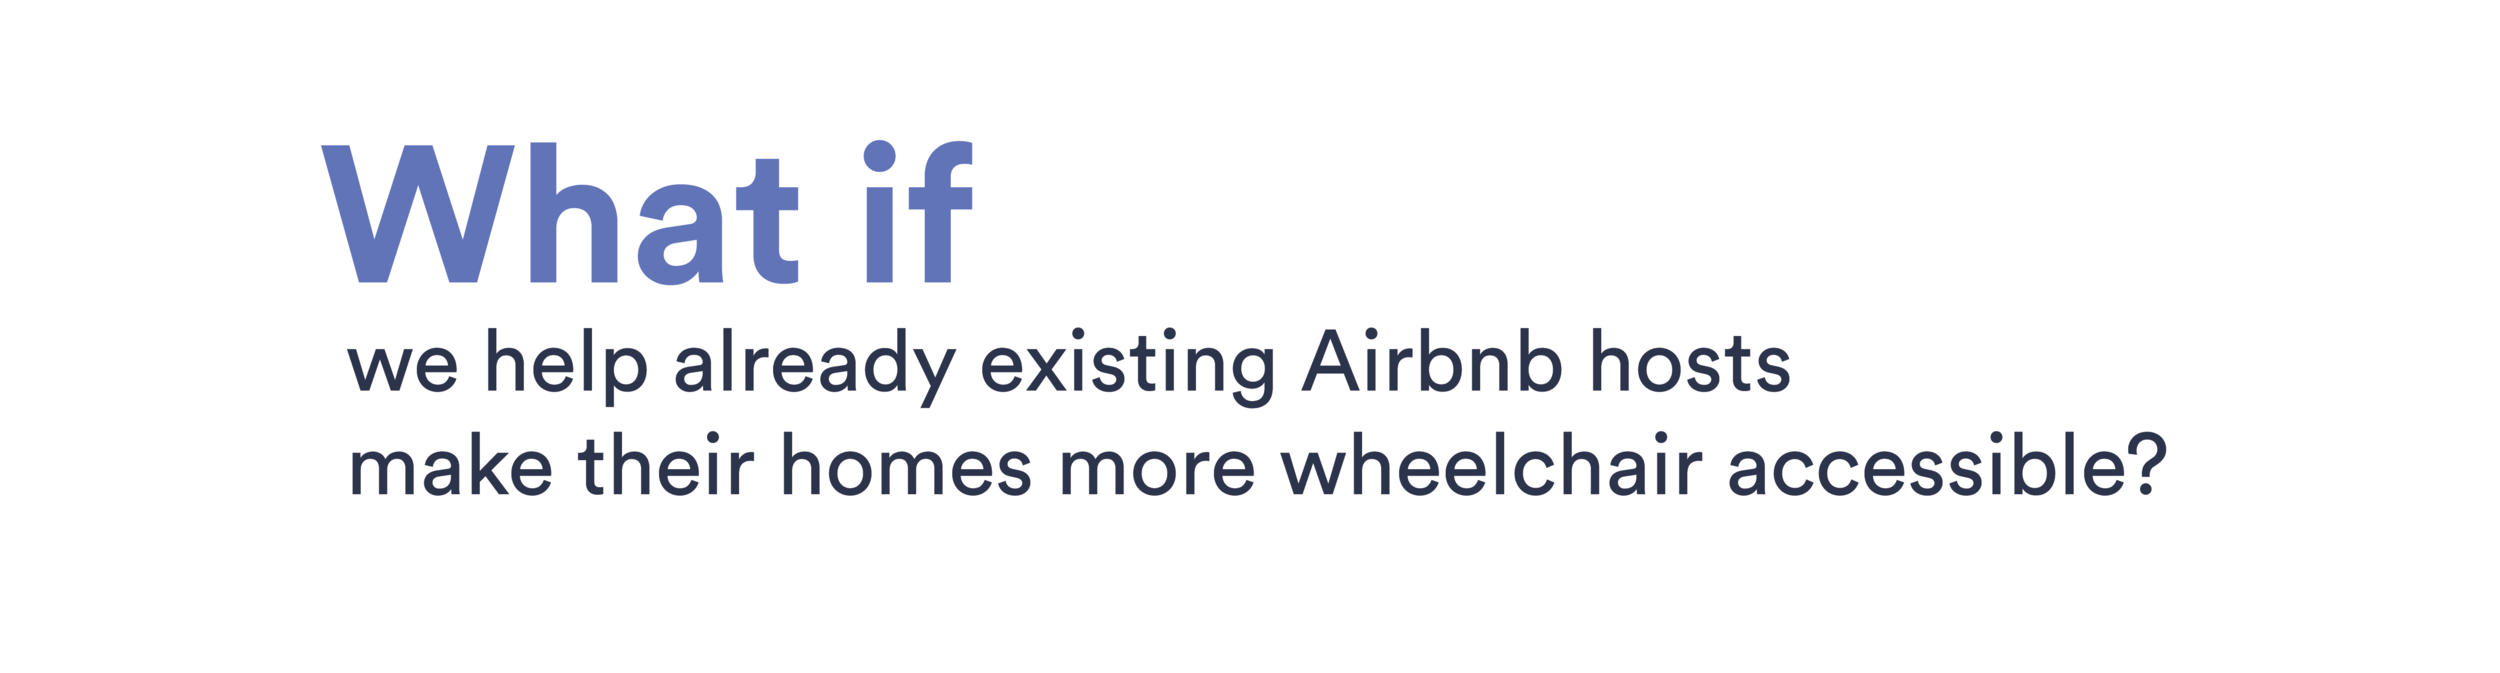 airbnb_revisions-05.png